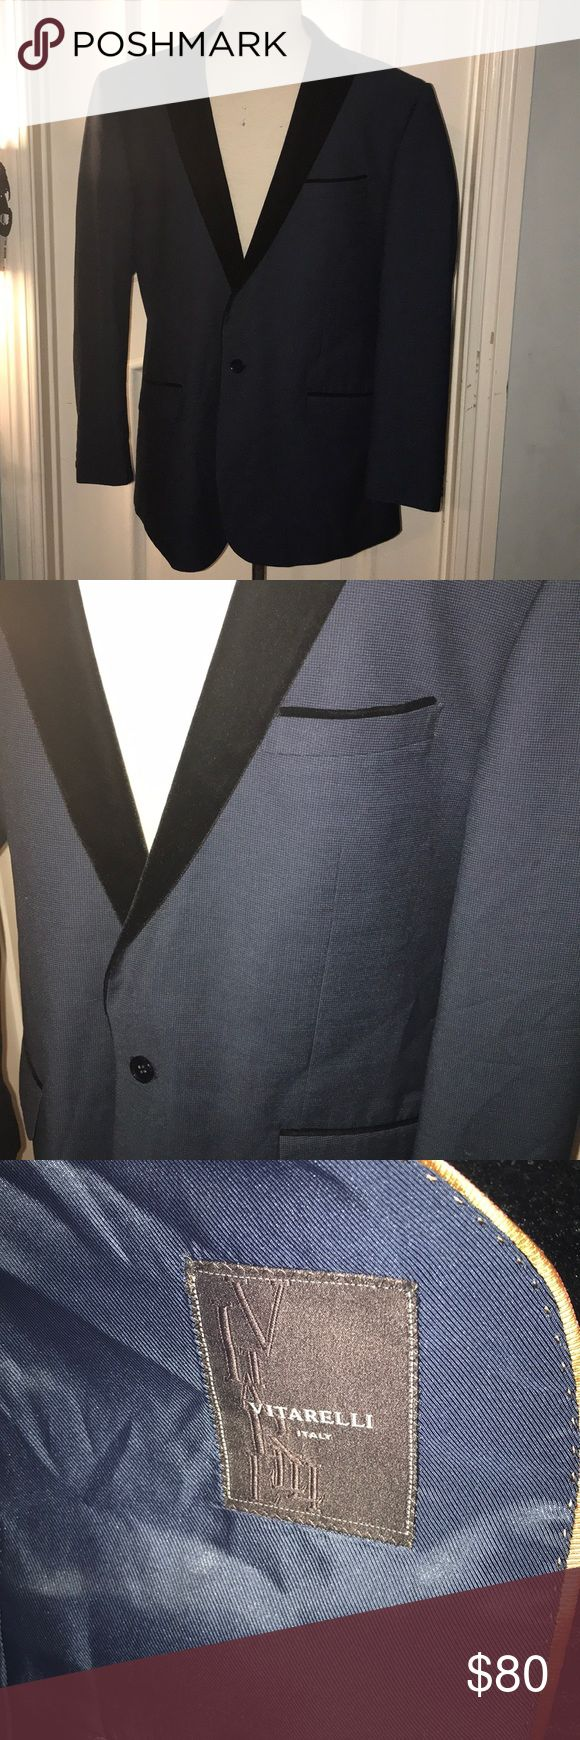 Men's velvet lapel one button suit jacket This sports coat is great for any event it's both formal and semi-formal this one button Vitarelli suit jacket made in Italy would look amazing w jeans or slacks. Open to offers or trades. vitarelli Suits & Blazers Sport Coats & Blazers